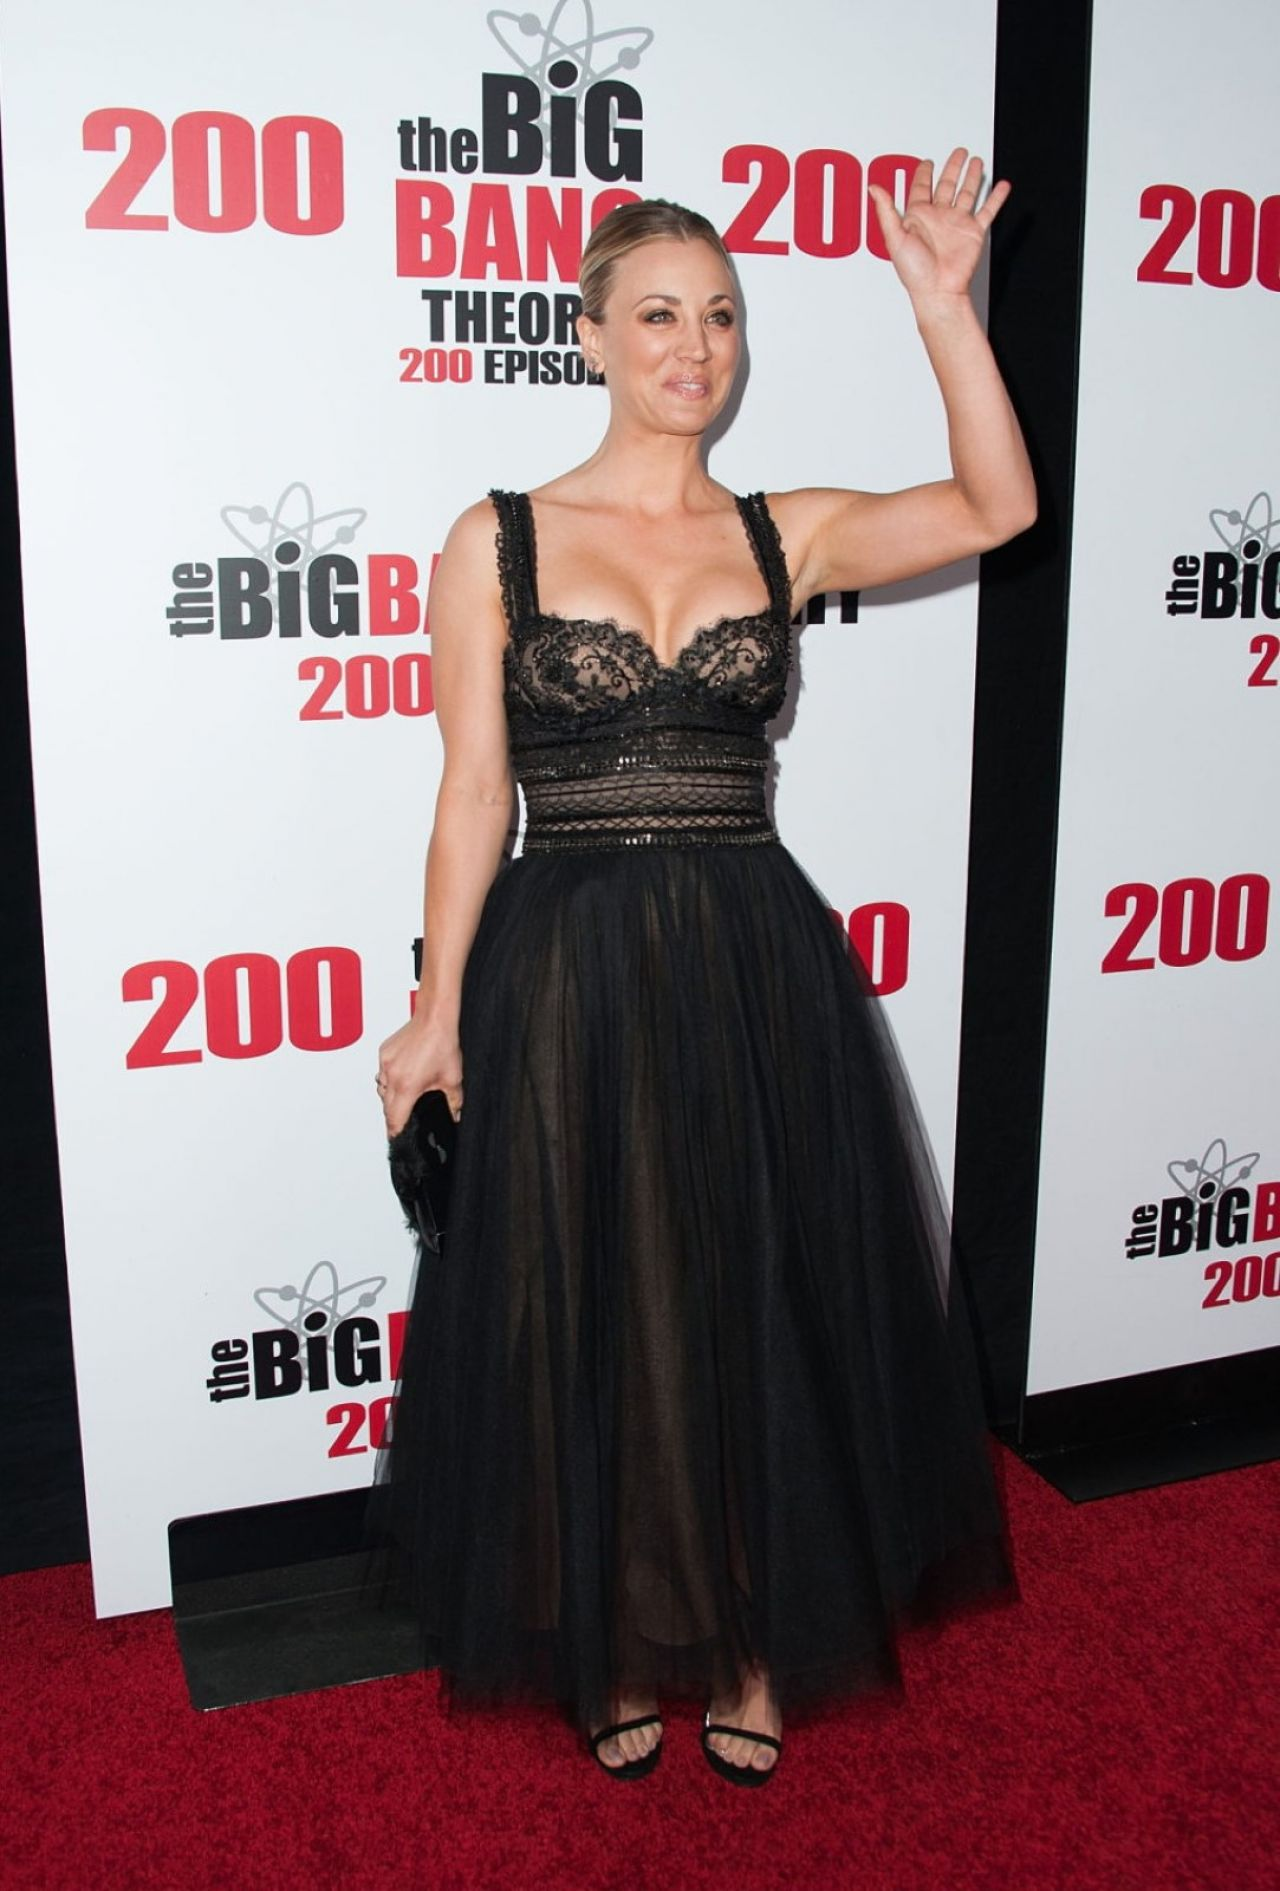 kaley-cuoco-cbs-s-the-big-bang-theory-celebrates-200th-episode-in-los-angeles-6